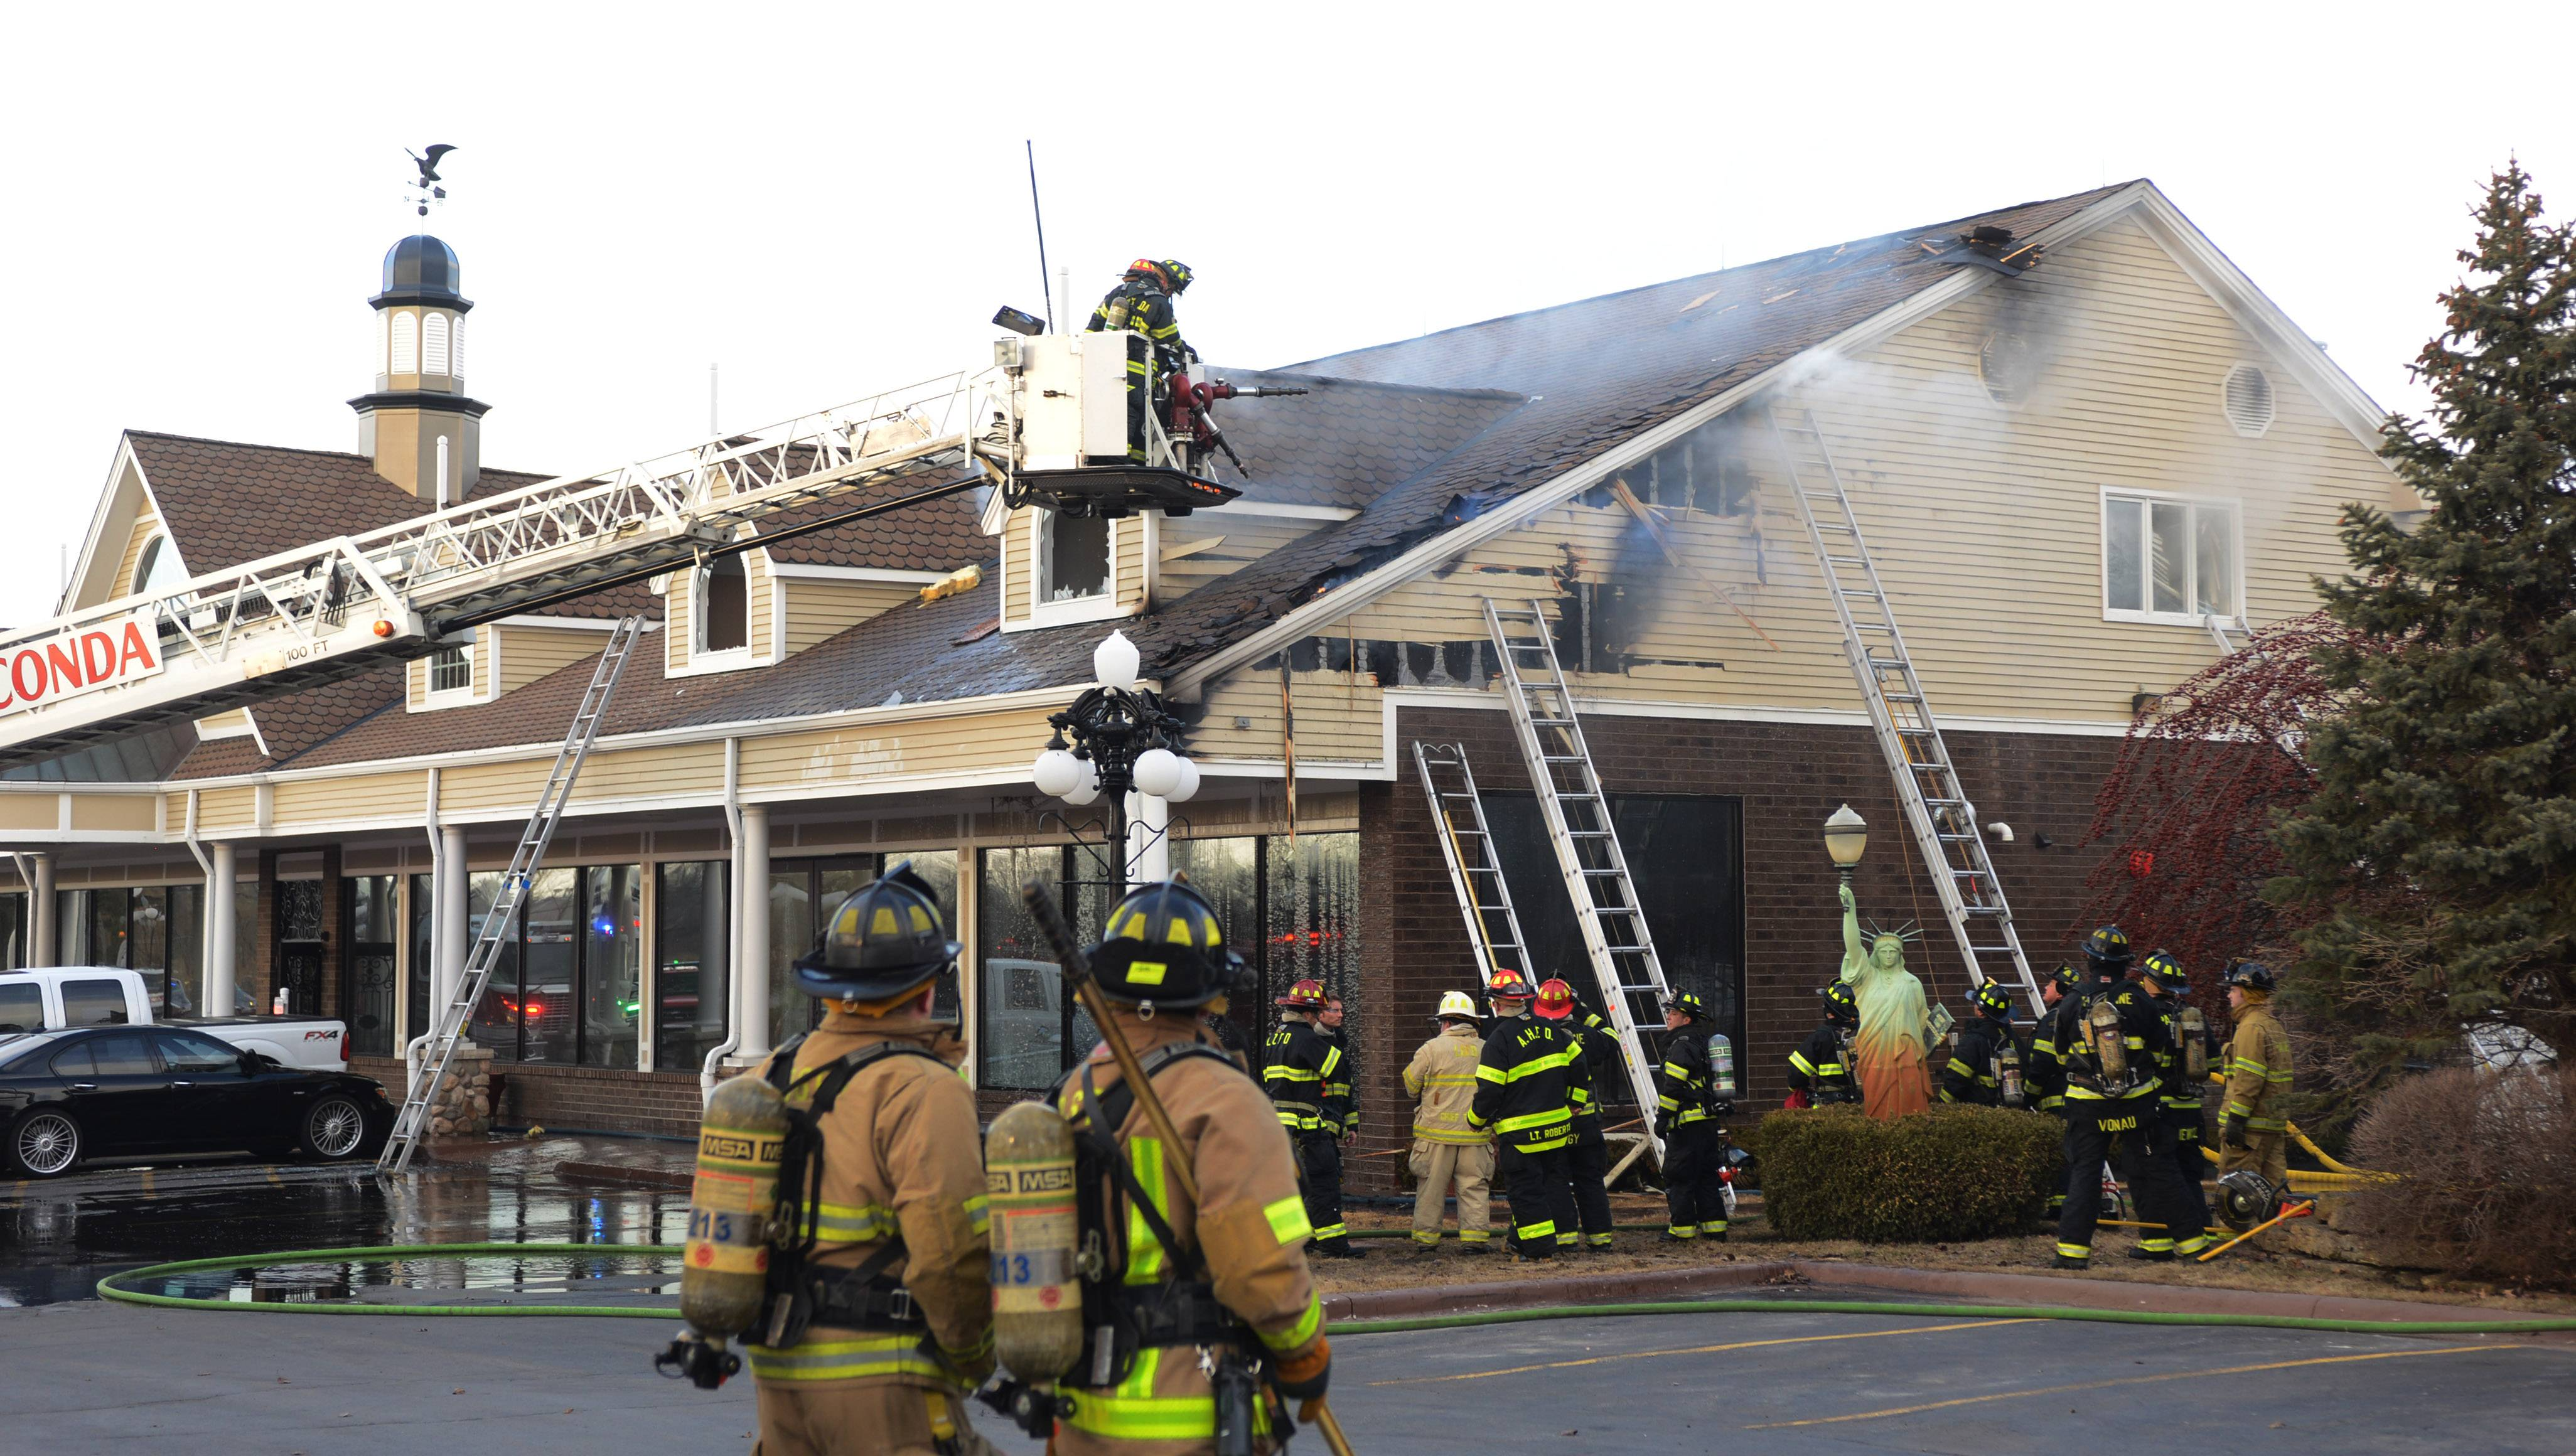 Firefighters on the scene Monday afternoon at Midwest Motors in Lake Zurich. Fire broke out on the second floor at the south end of the building.